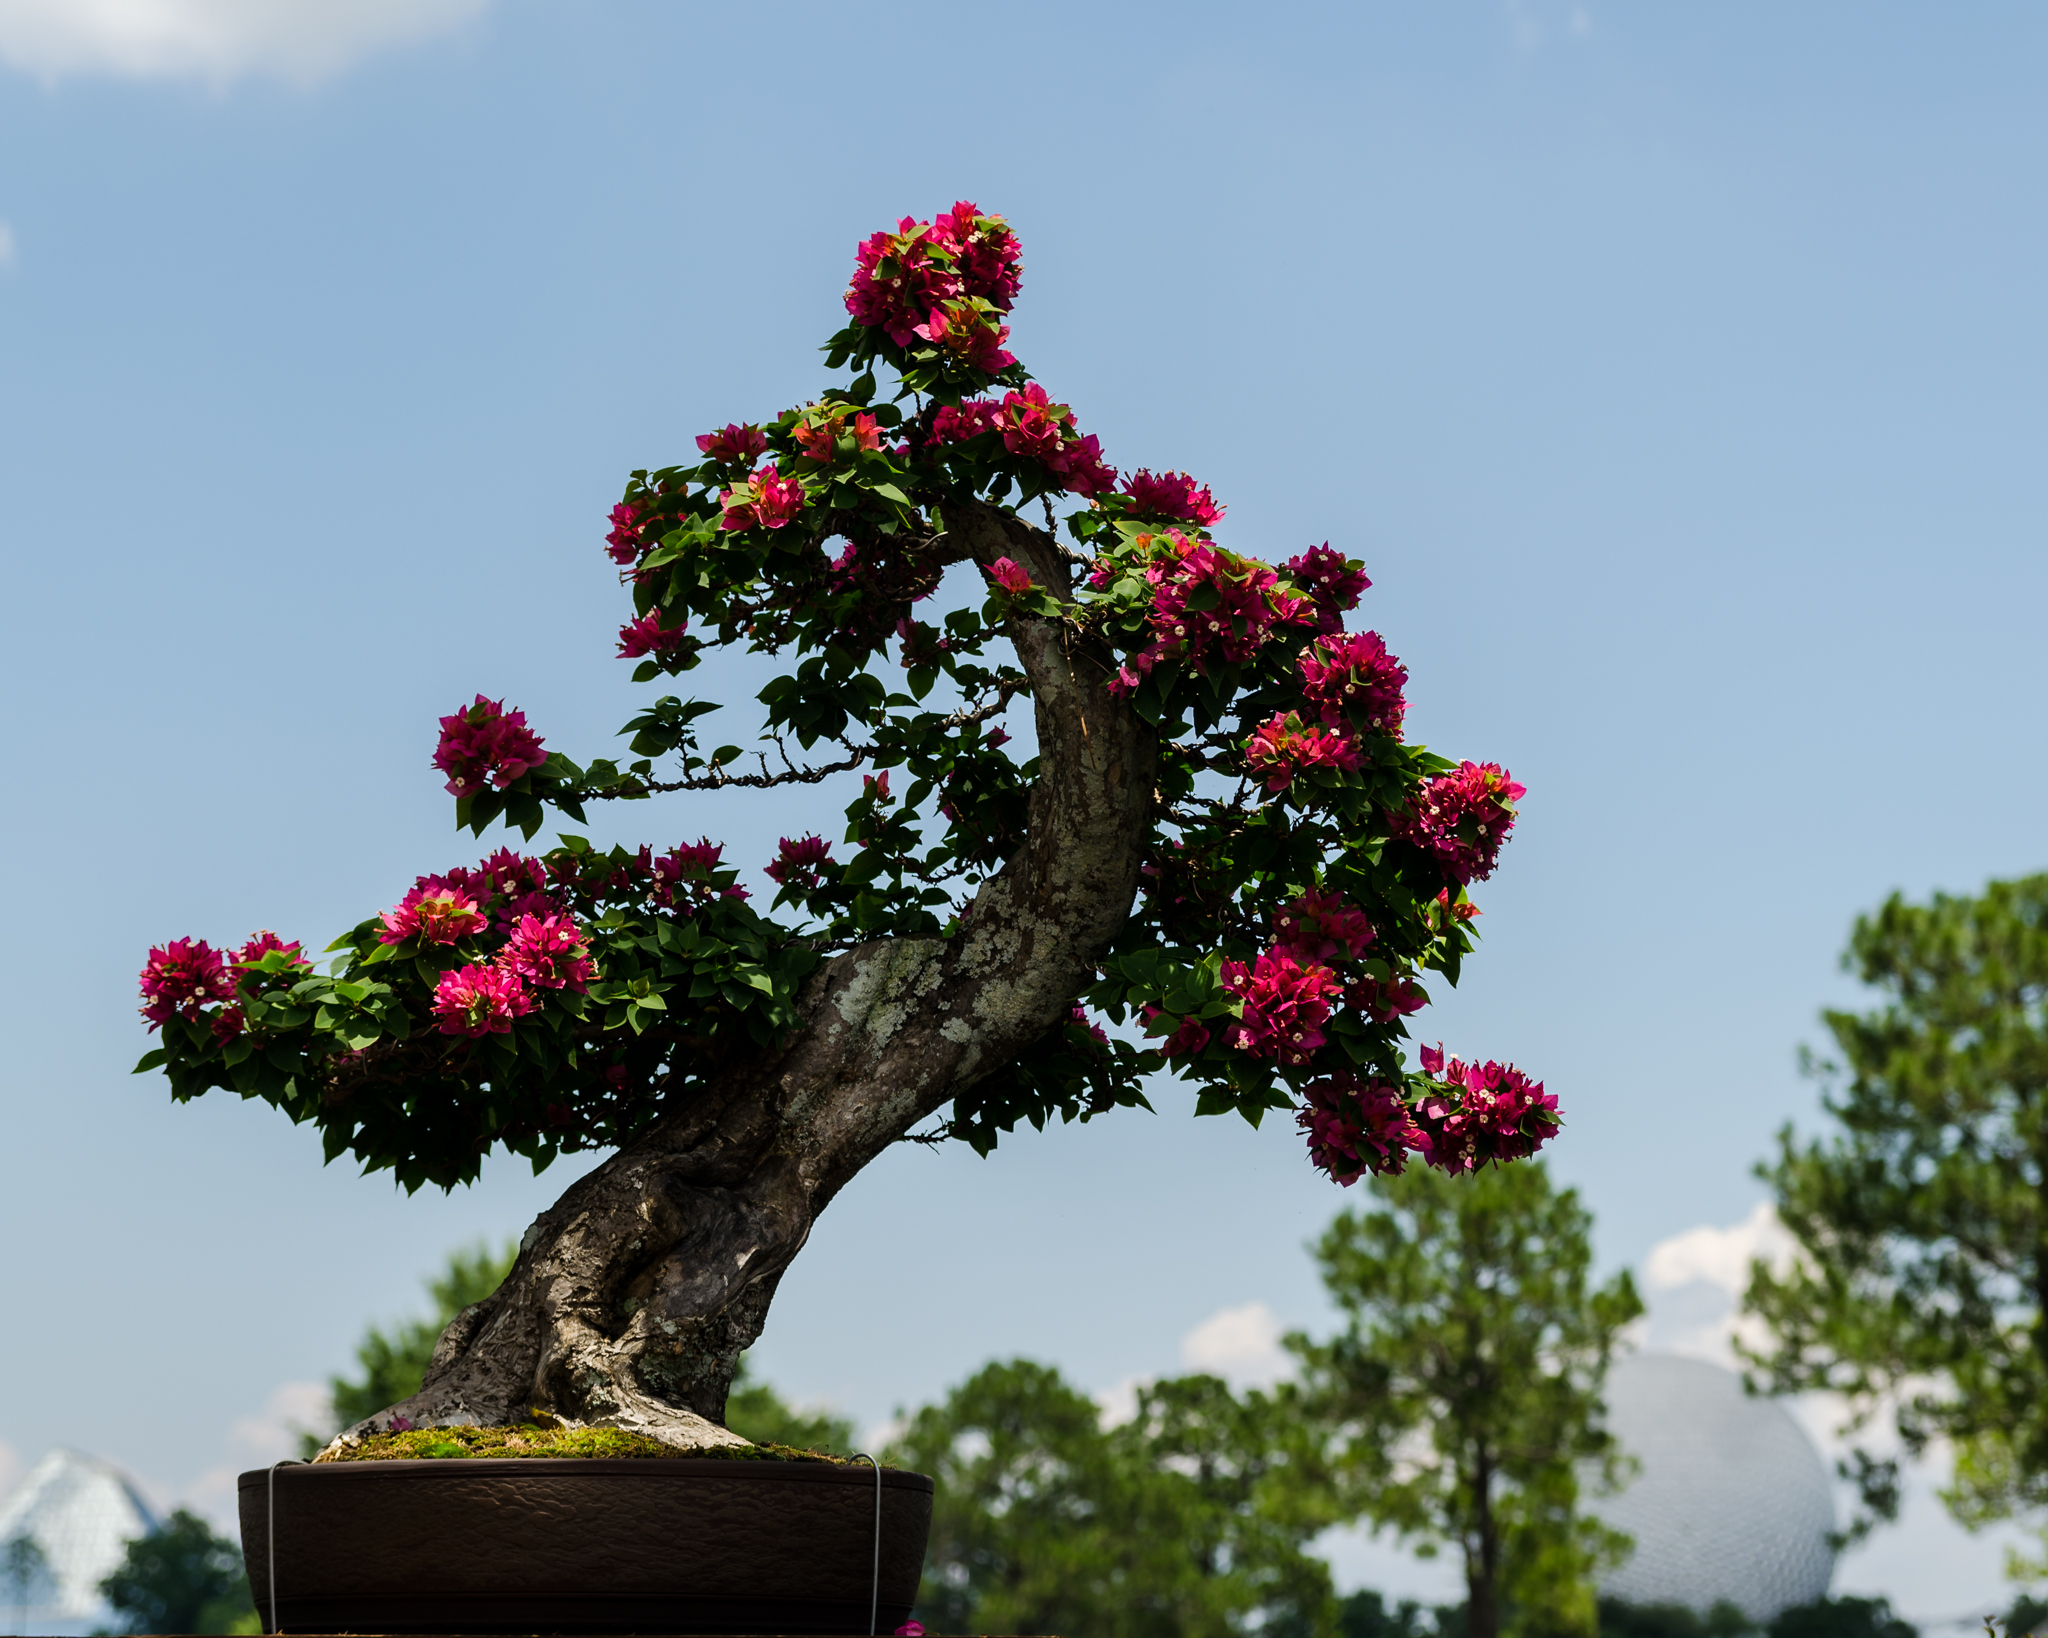 Bonsai trees in Japan pavilion at Epcot during Flower & Garden Festival 2012